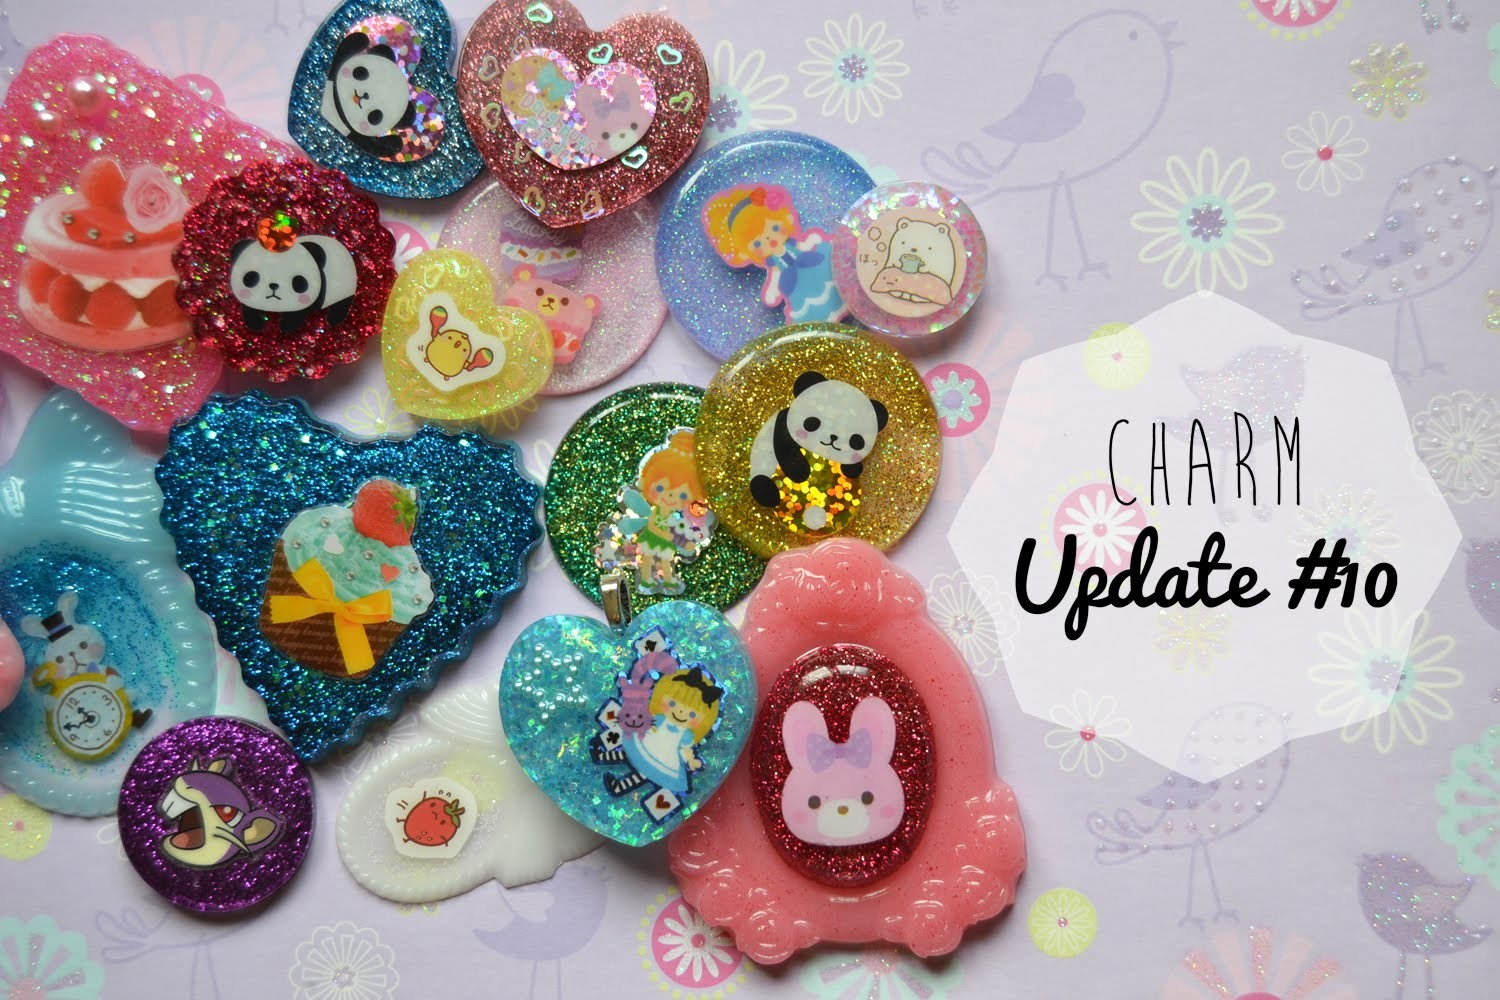 Charm Update #10 ~ Accesorios hechos a mano ☆